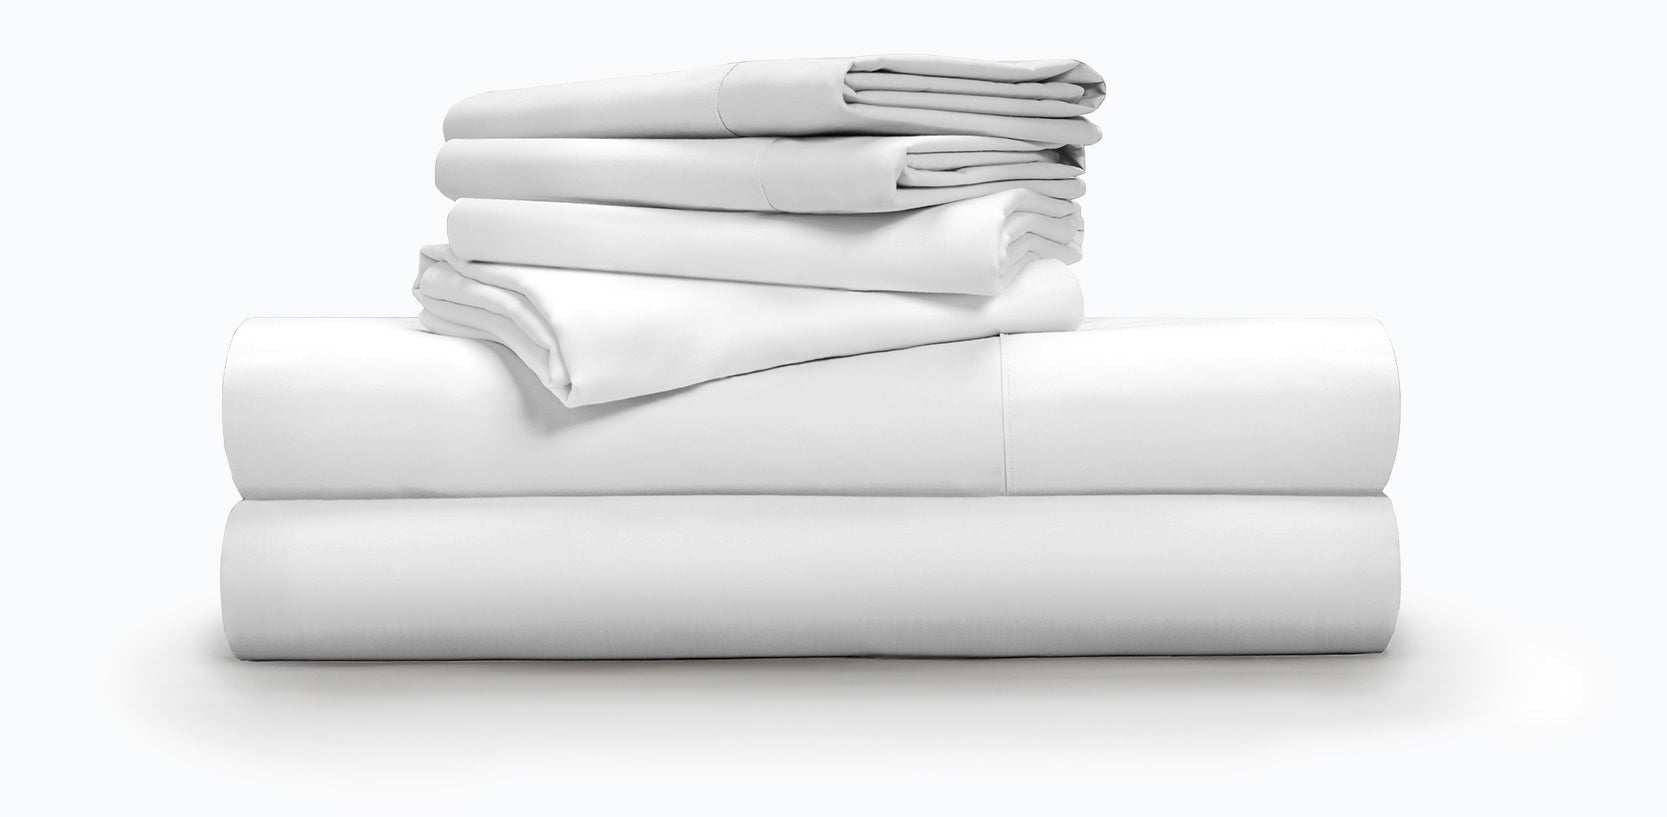 Luxe Soft And Smooth Sheets For Men Pillow Guy